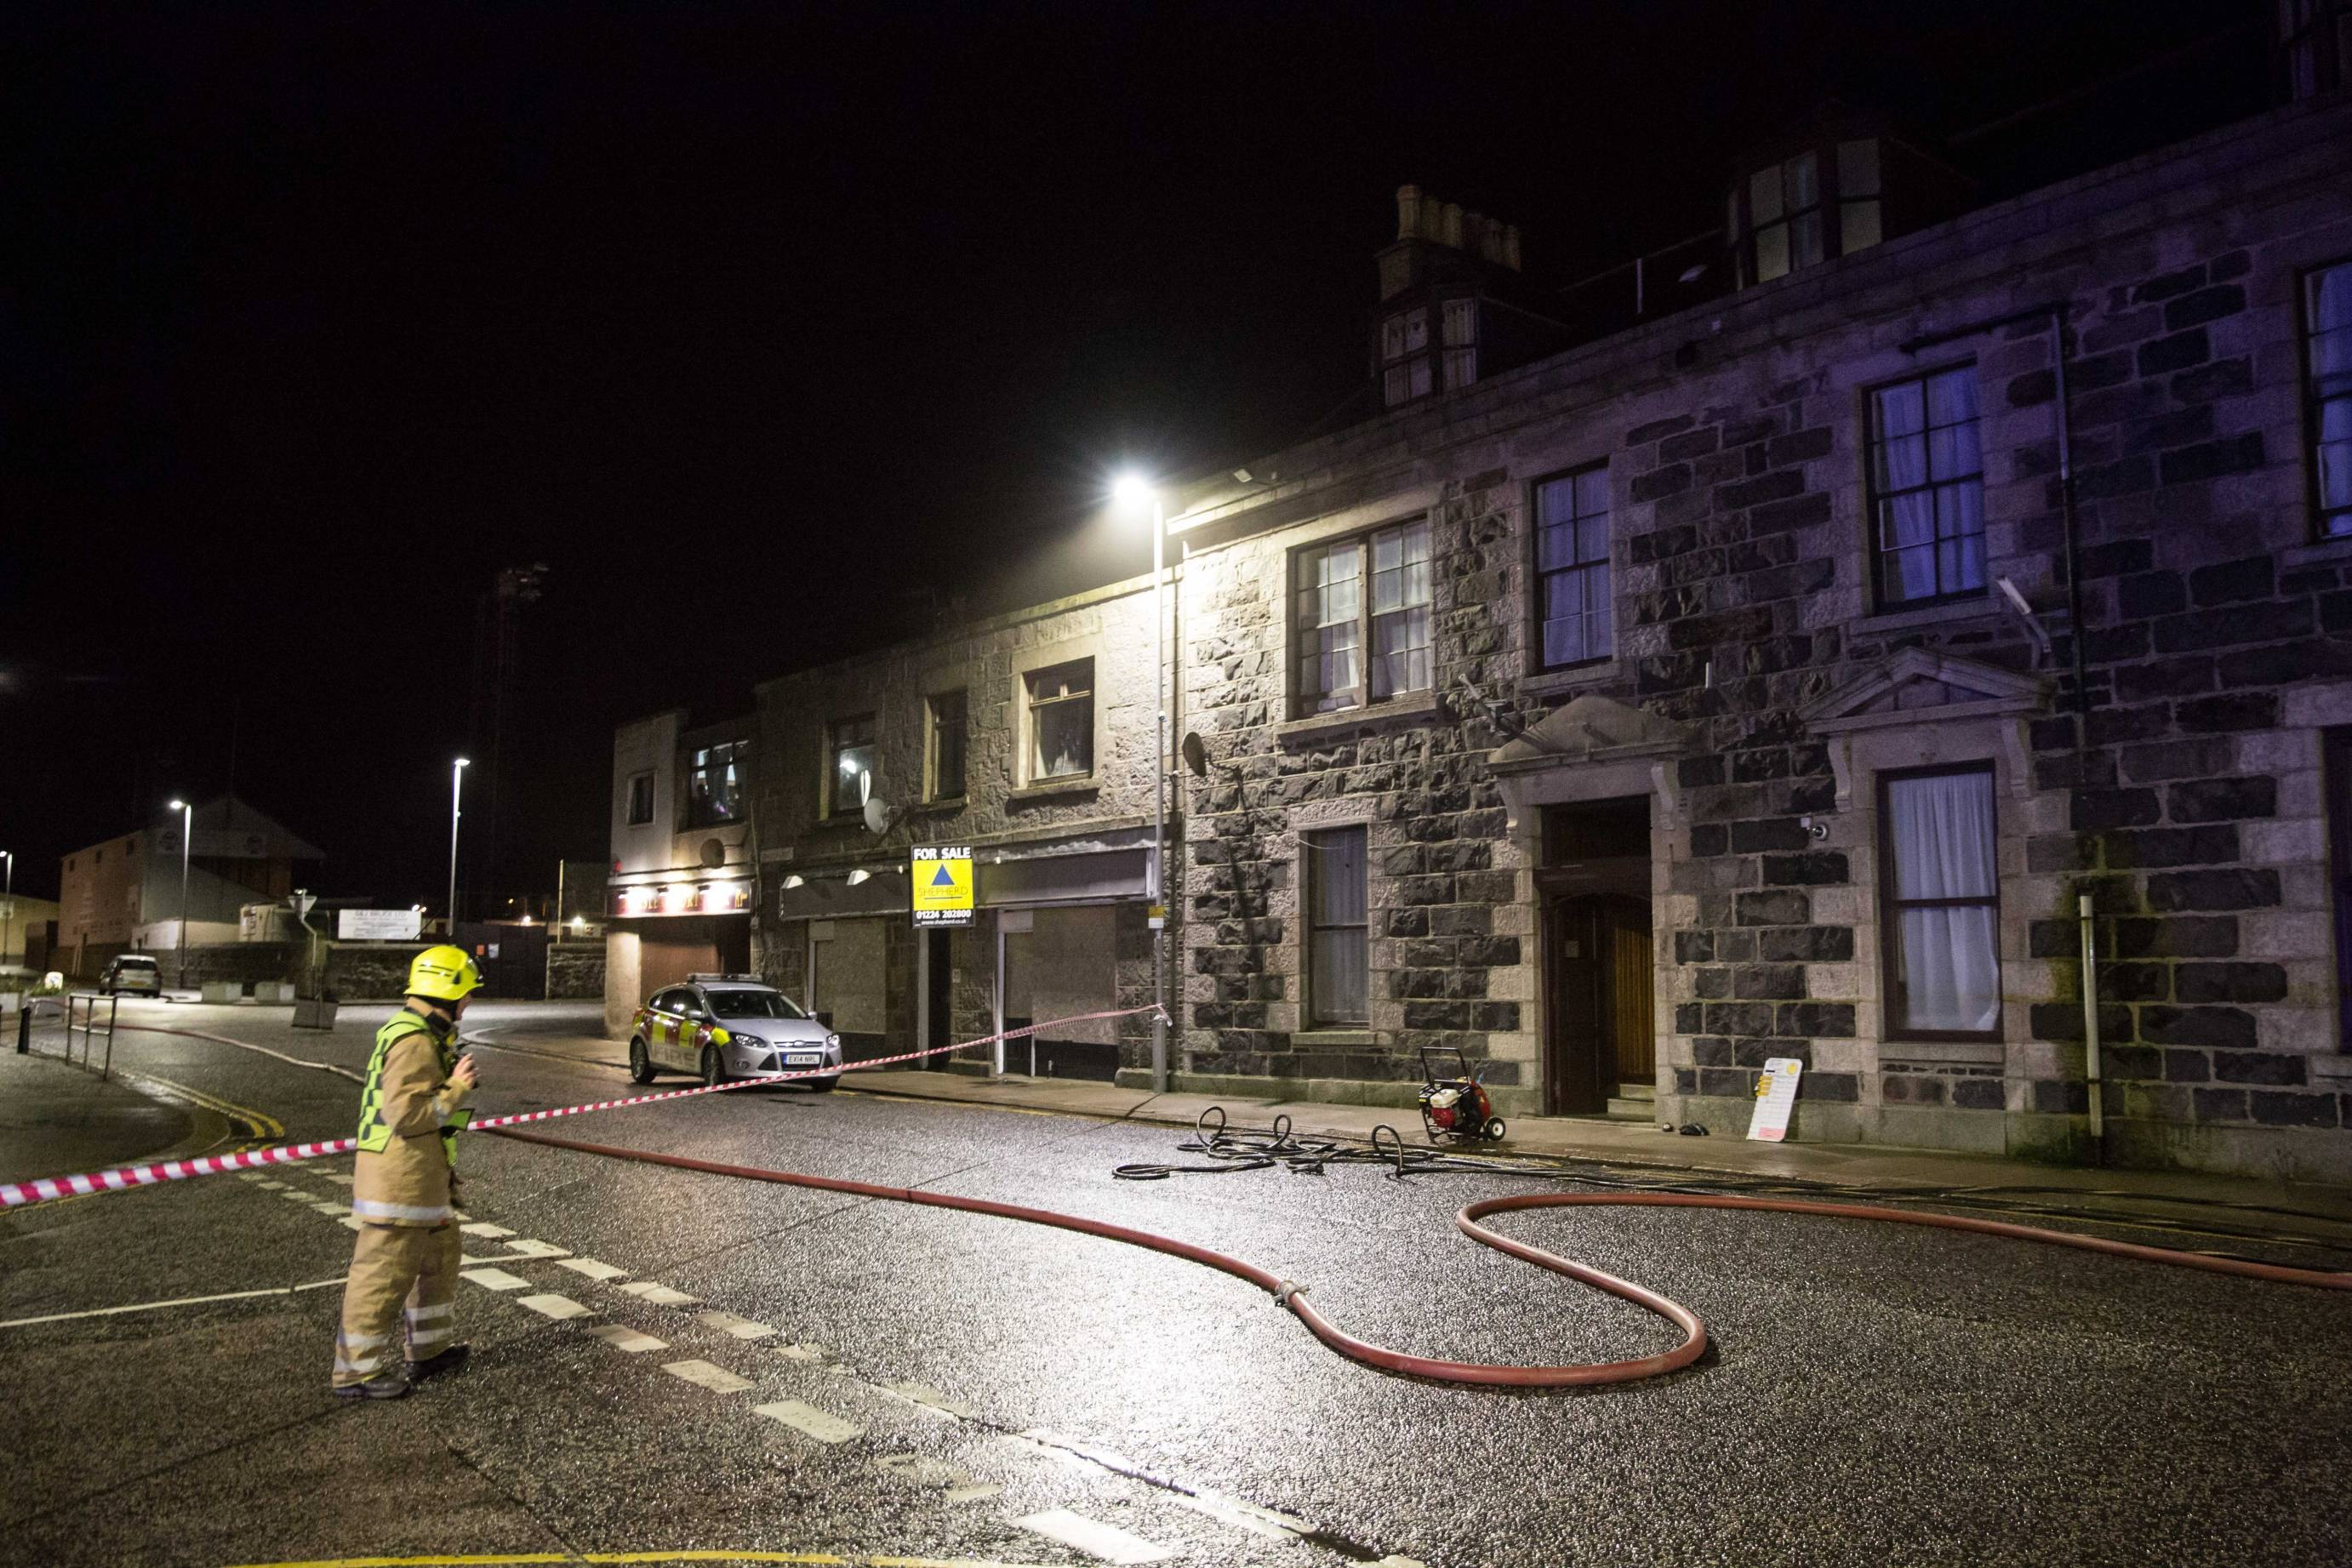 The fire happened at the former Station Hotel in Fraserburgh.